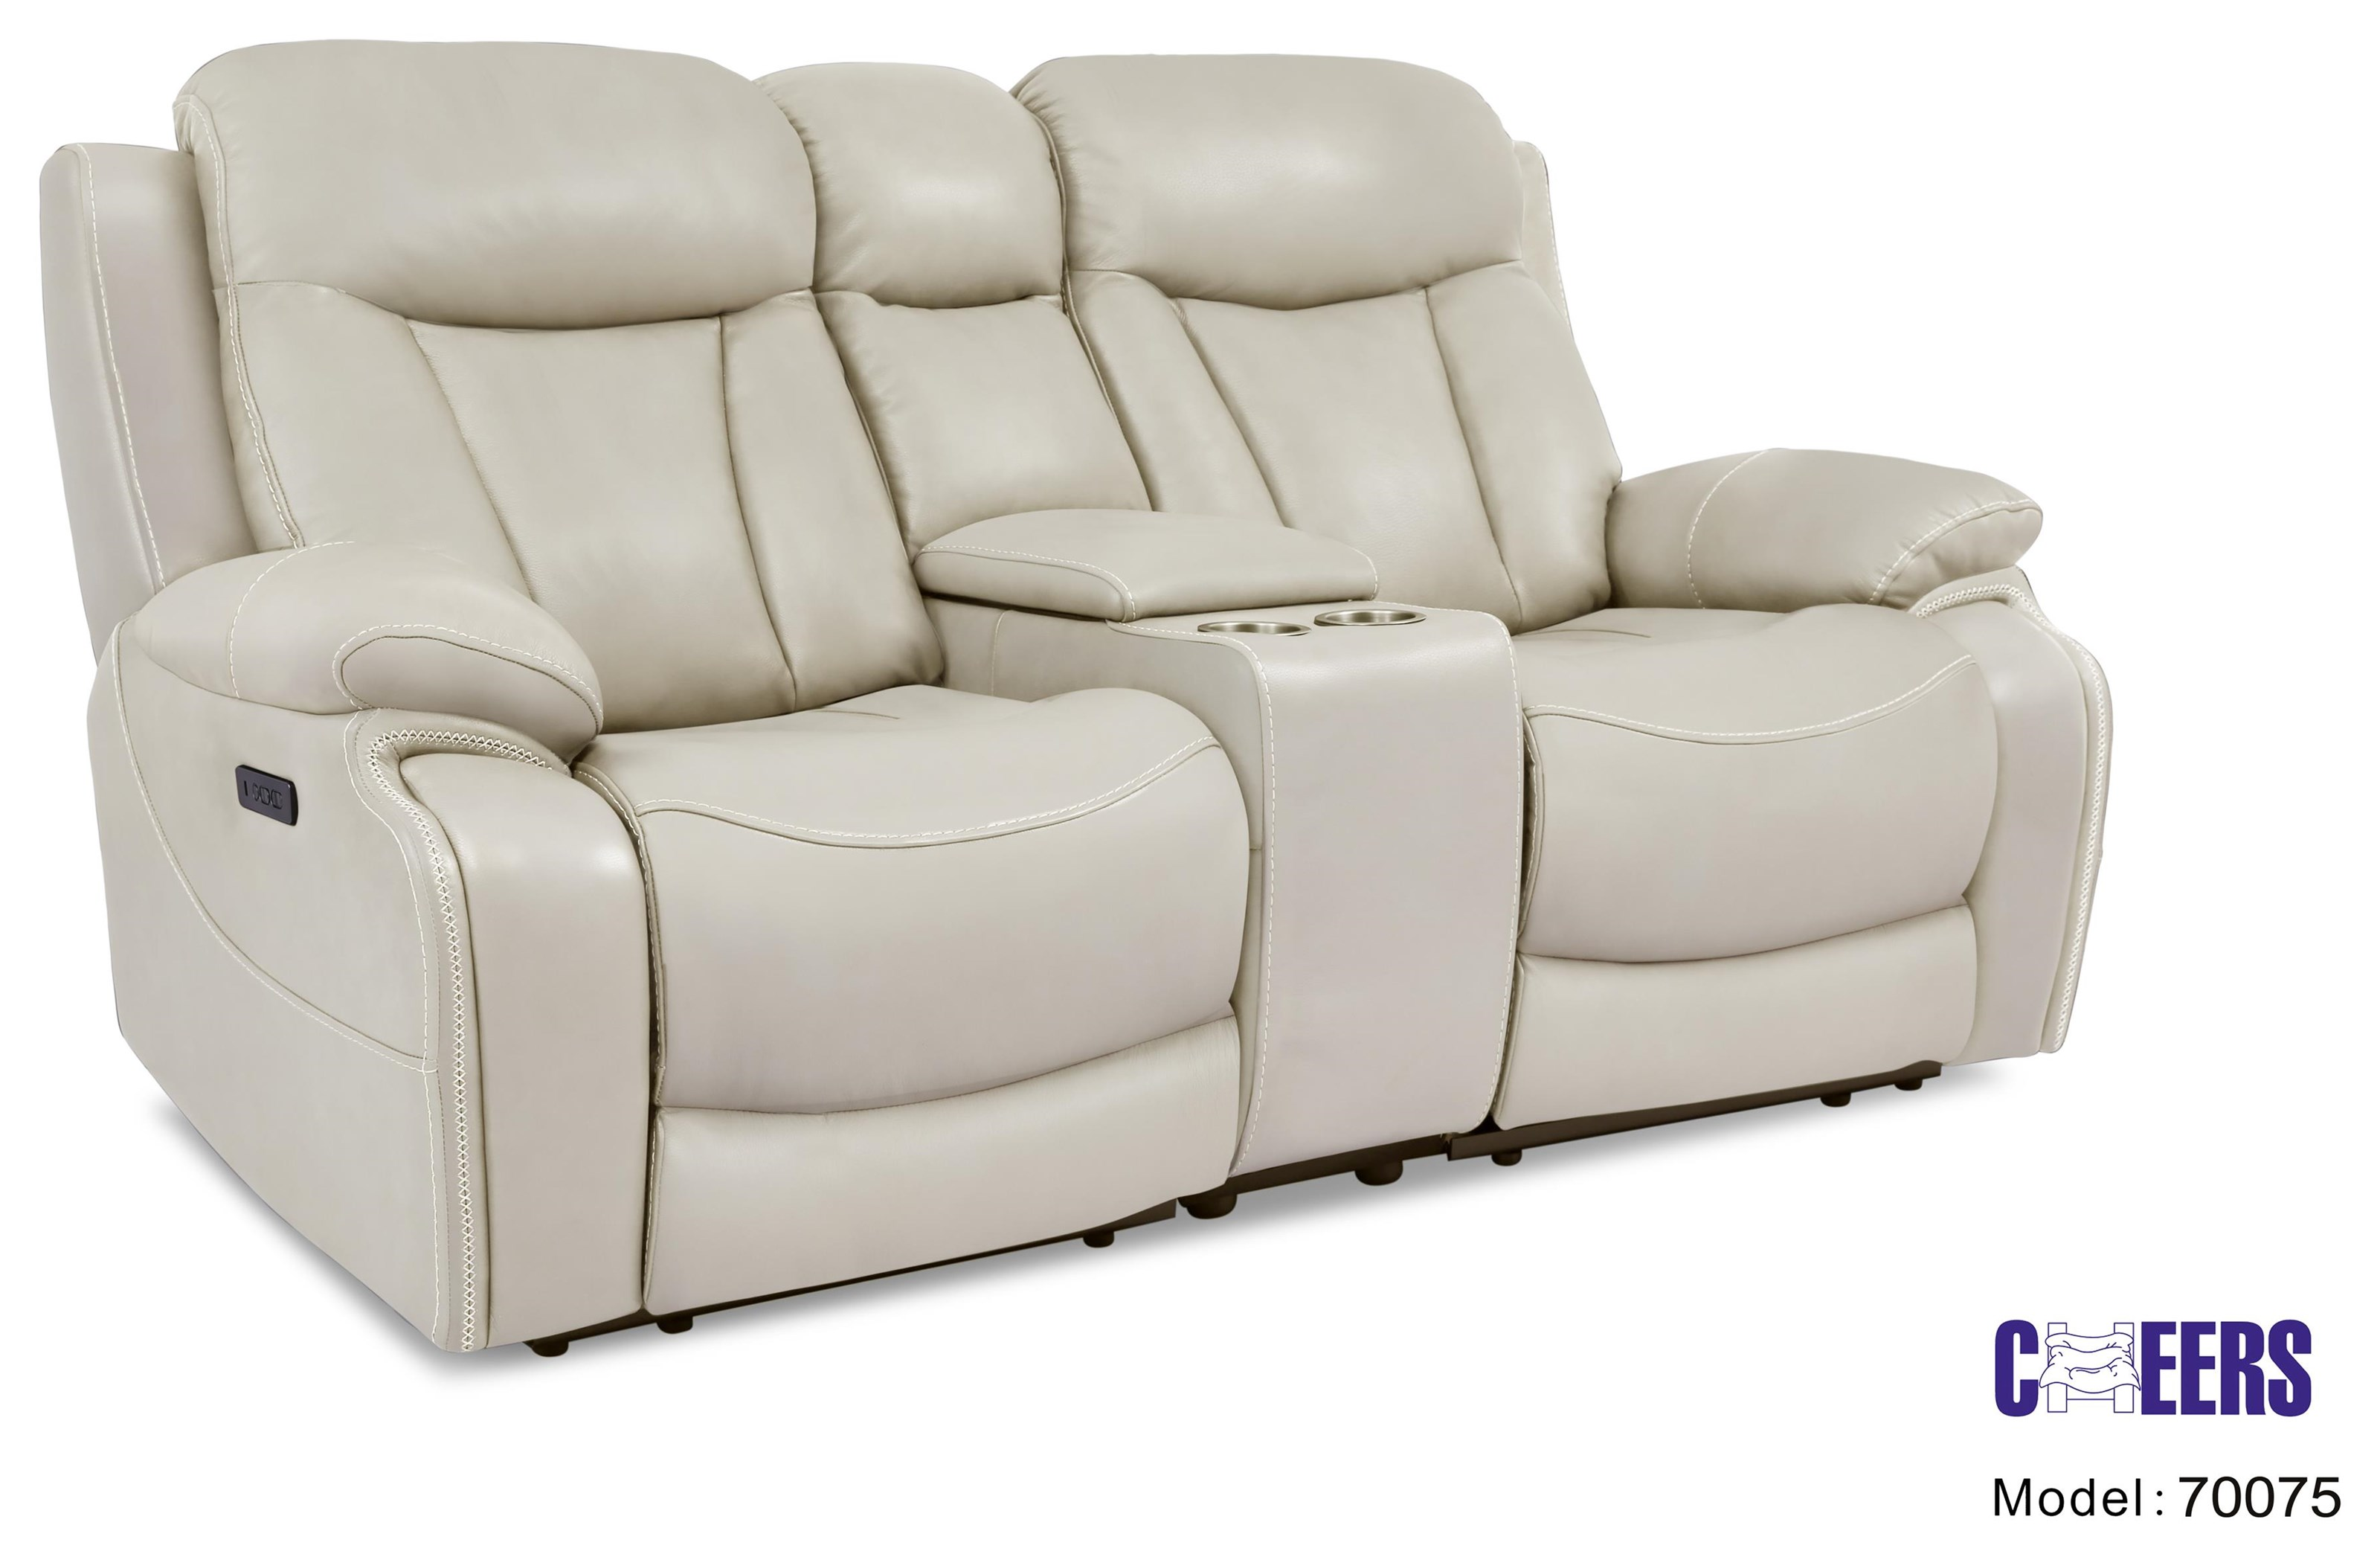 70075 Power Reclining Console Loveseat  with Powe by Cheers at Furniture Fair - North Carolina